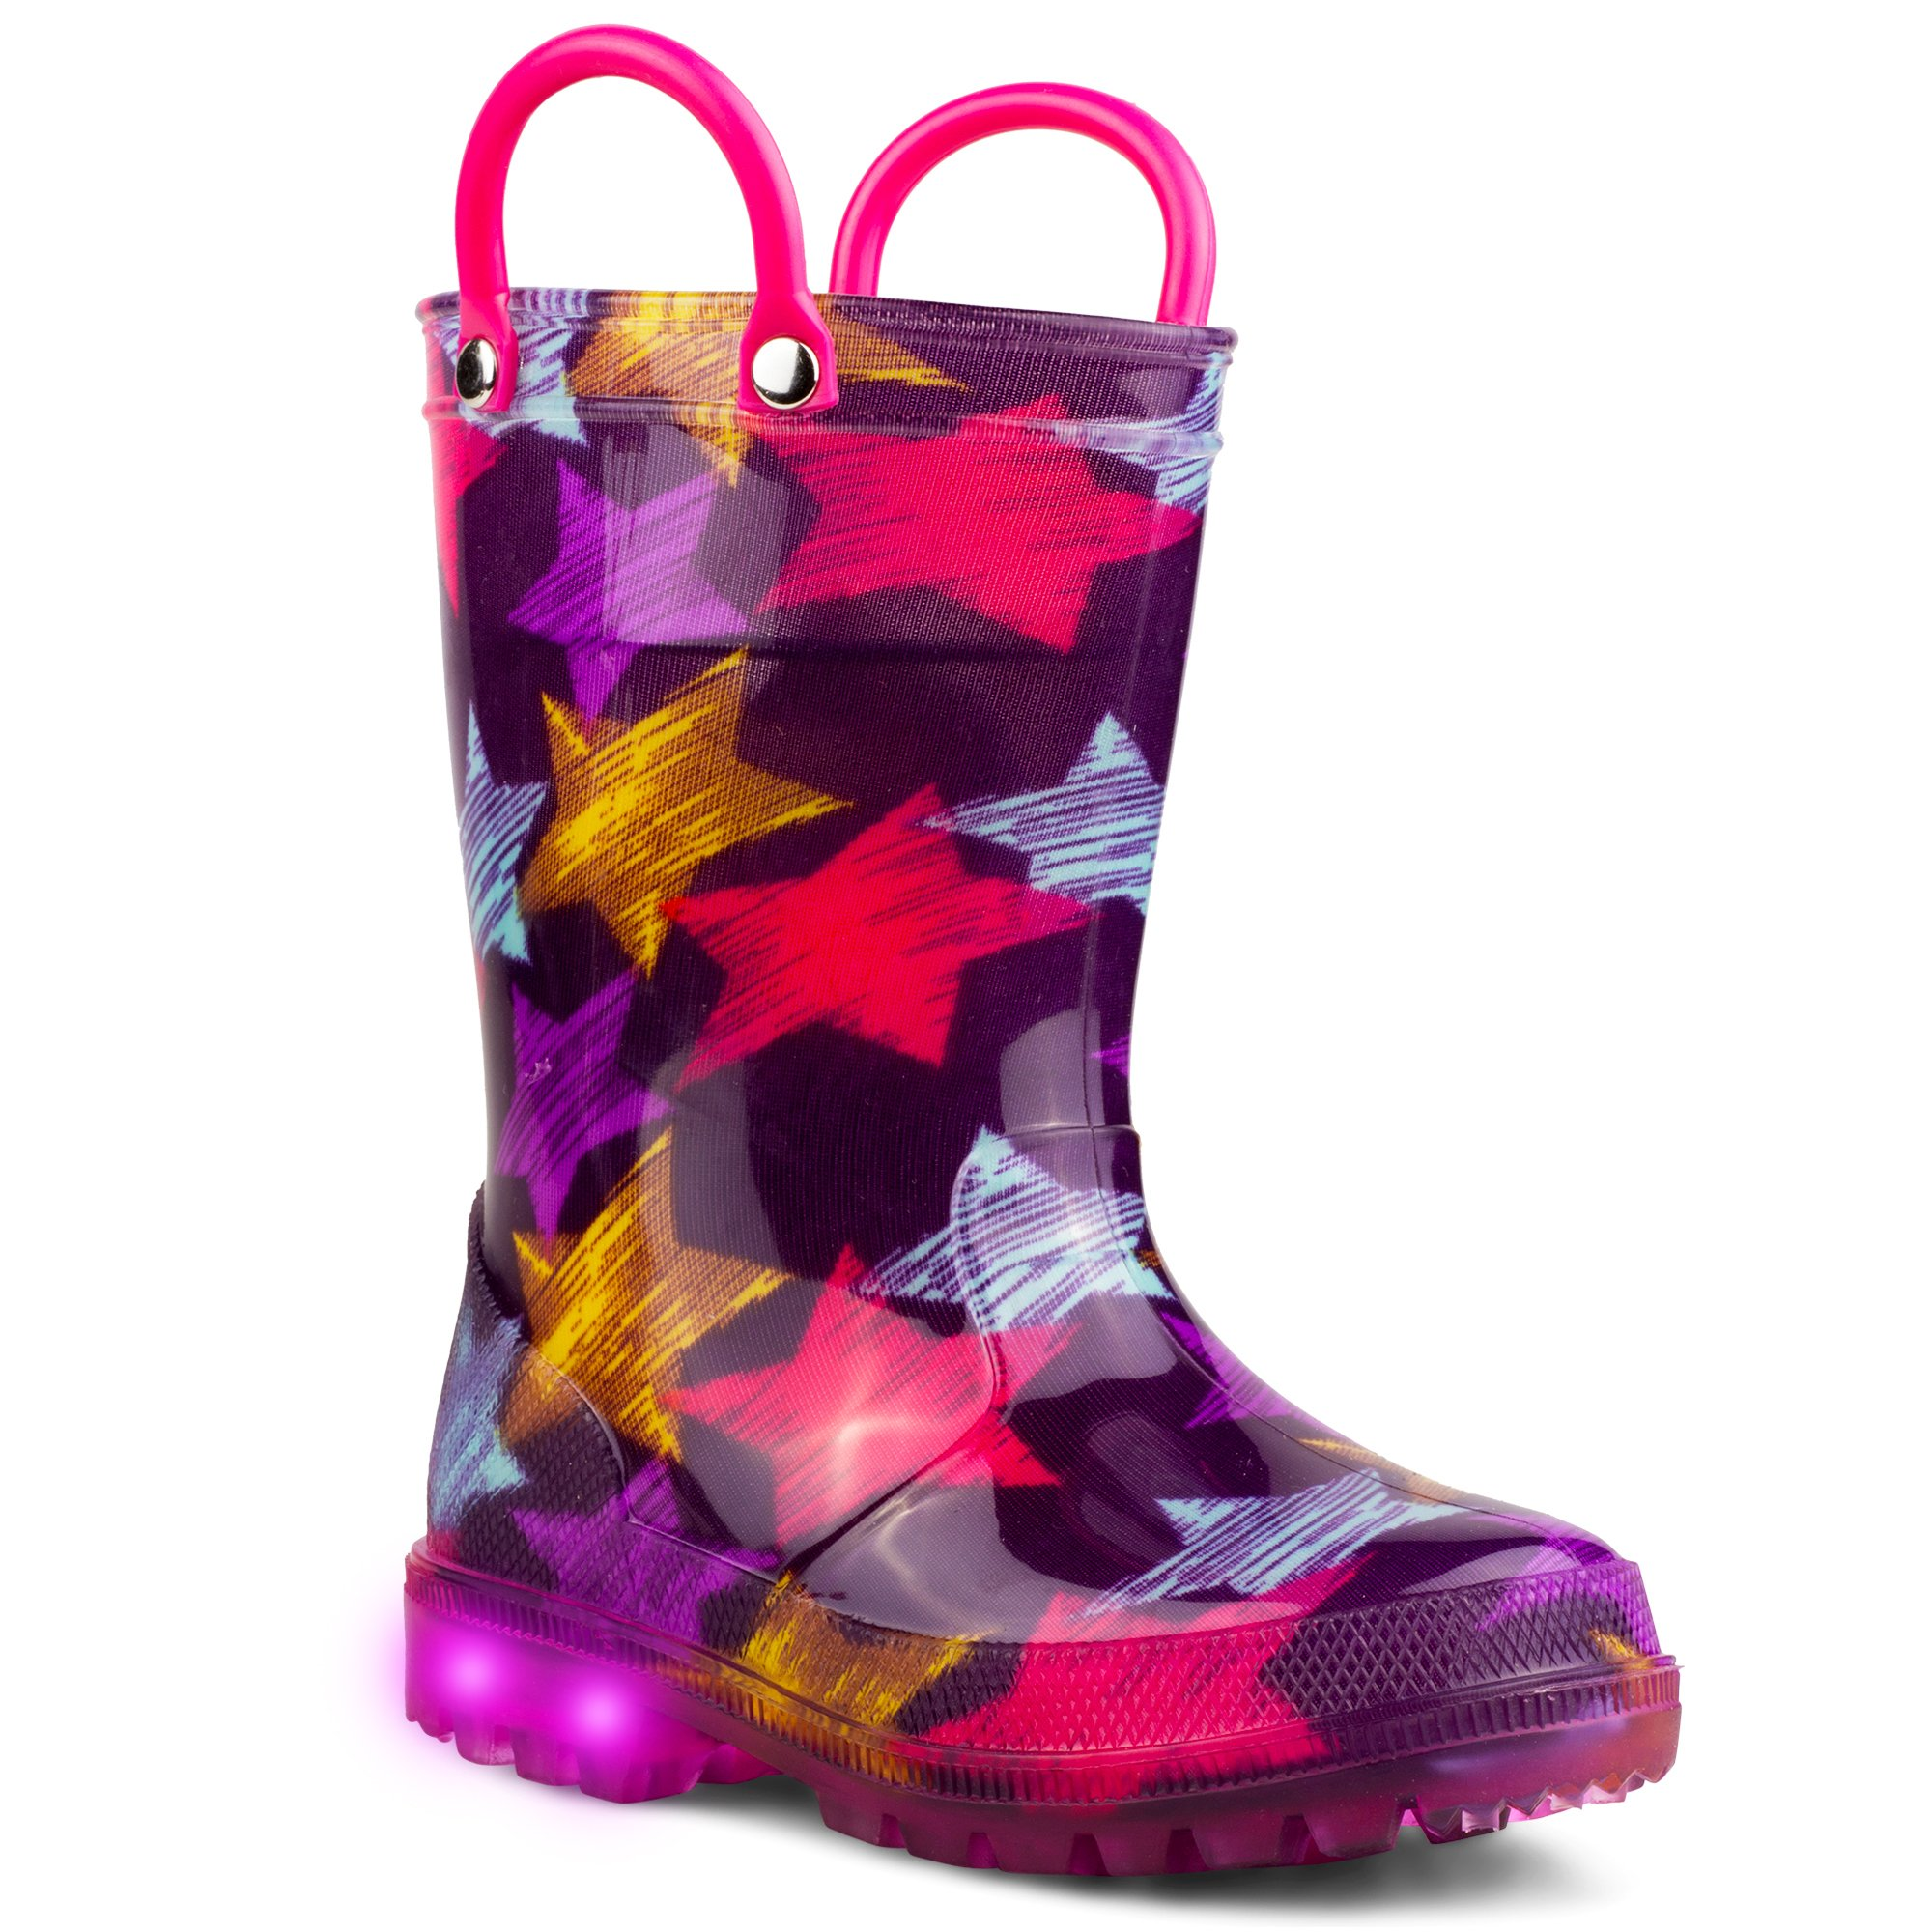 Chillipop Light Up Rainboots For Boys, Girls & Toddlers With Fun Kid Prints with 5 Lights, Purple, 10 M Toddler